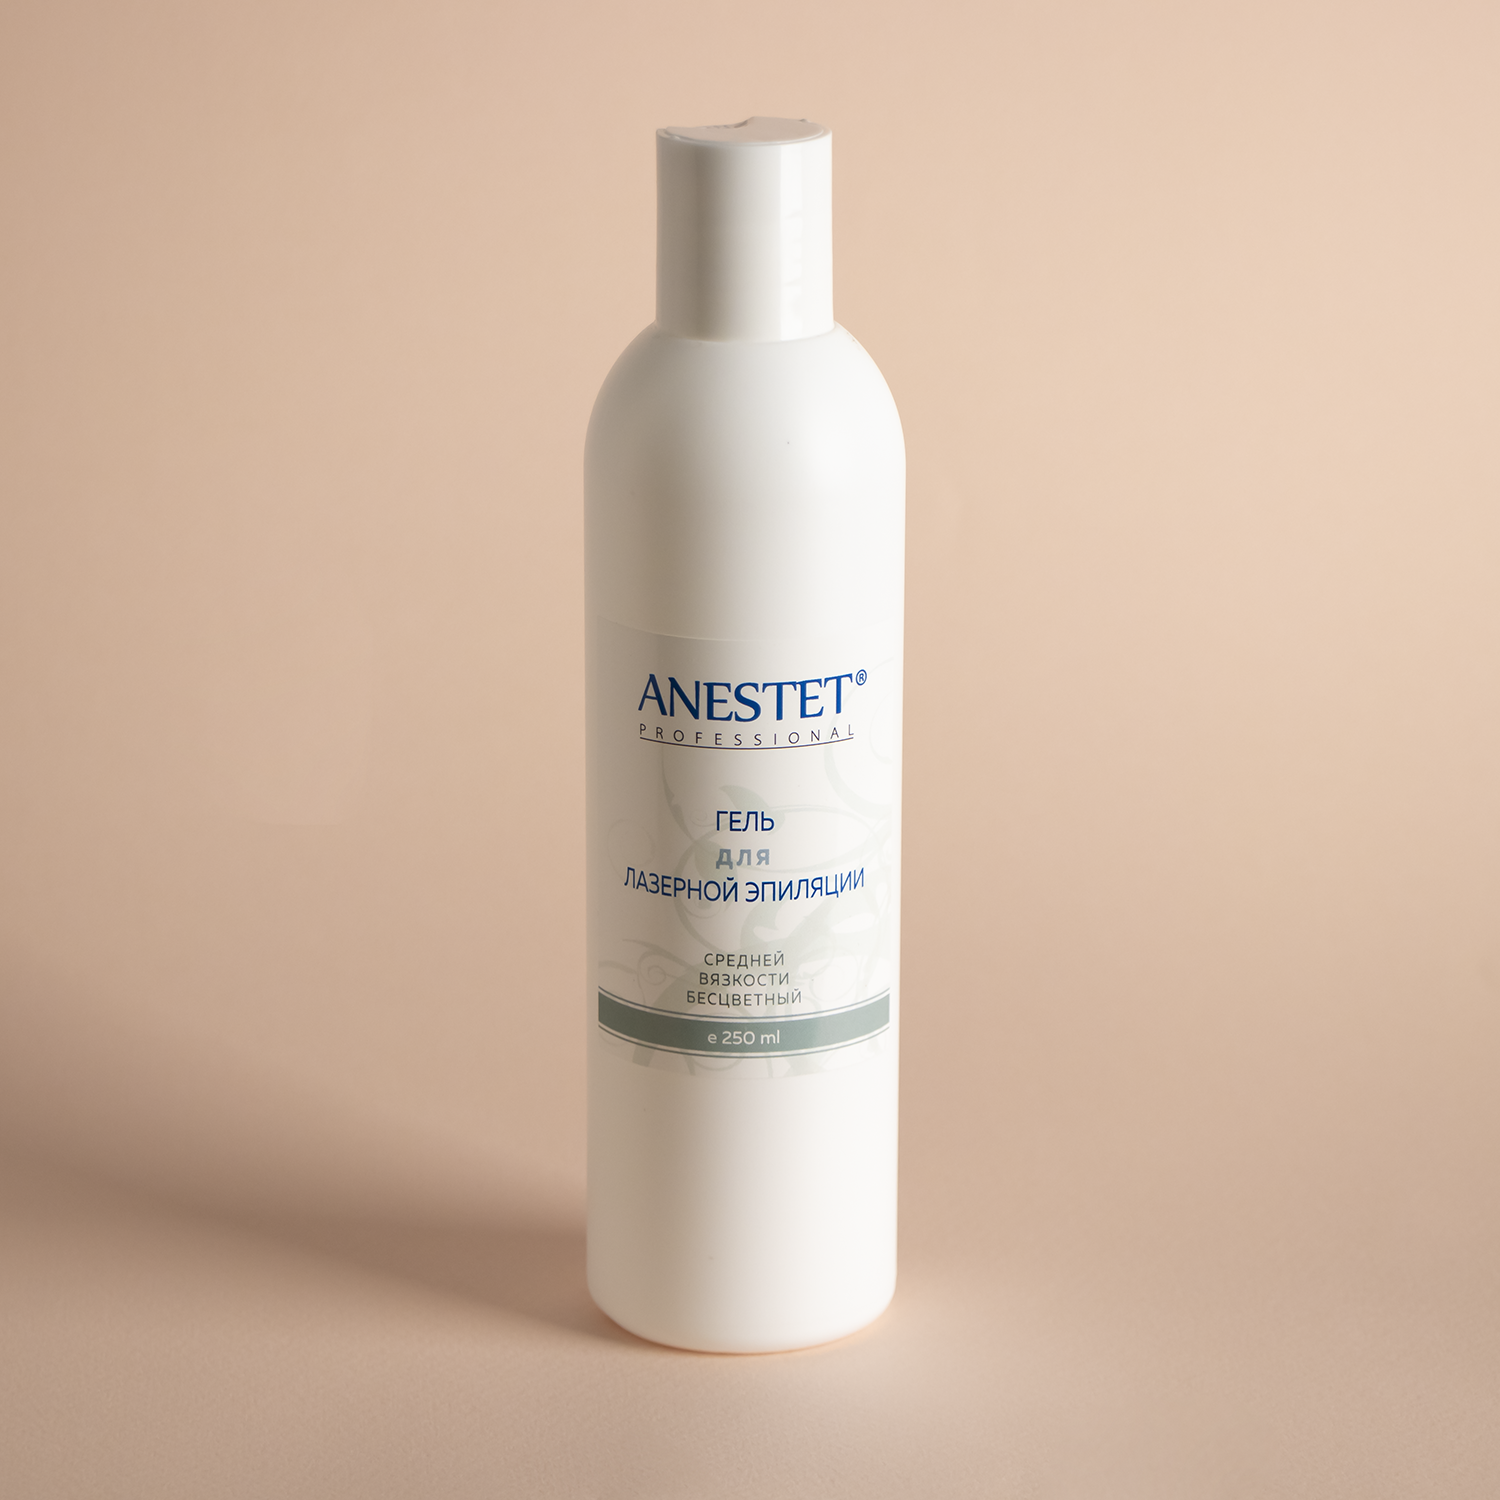 gel-for-laser-hair-removal-medium-viscosity-anestet-анестет-медиагель-250-ml